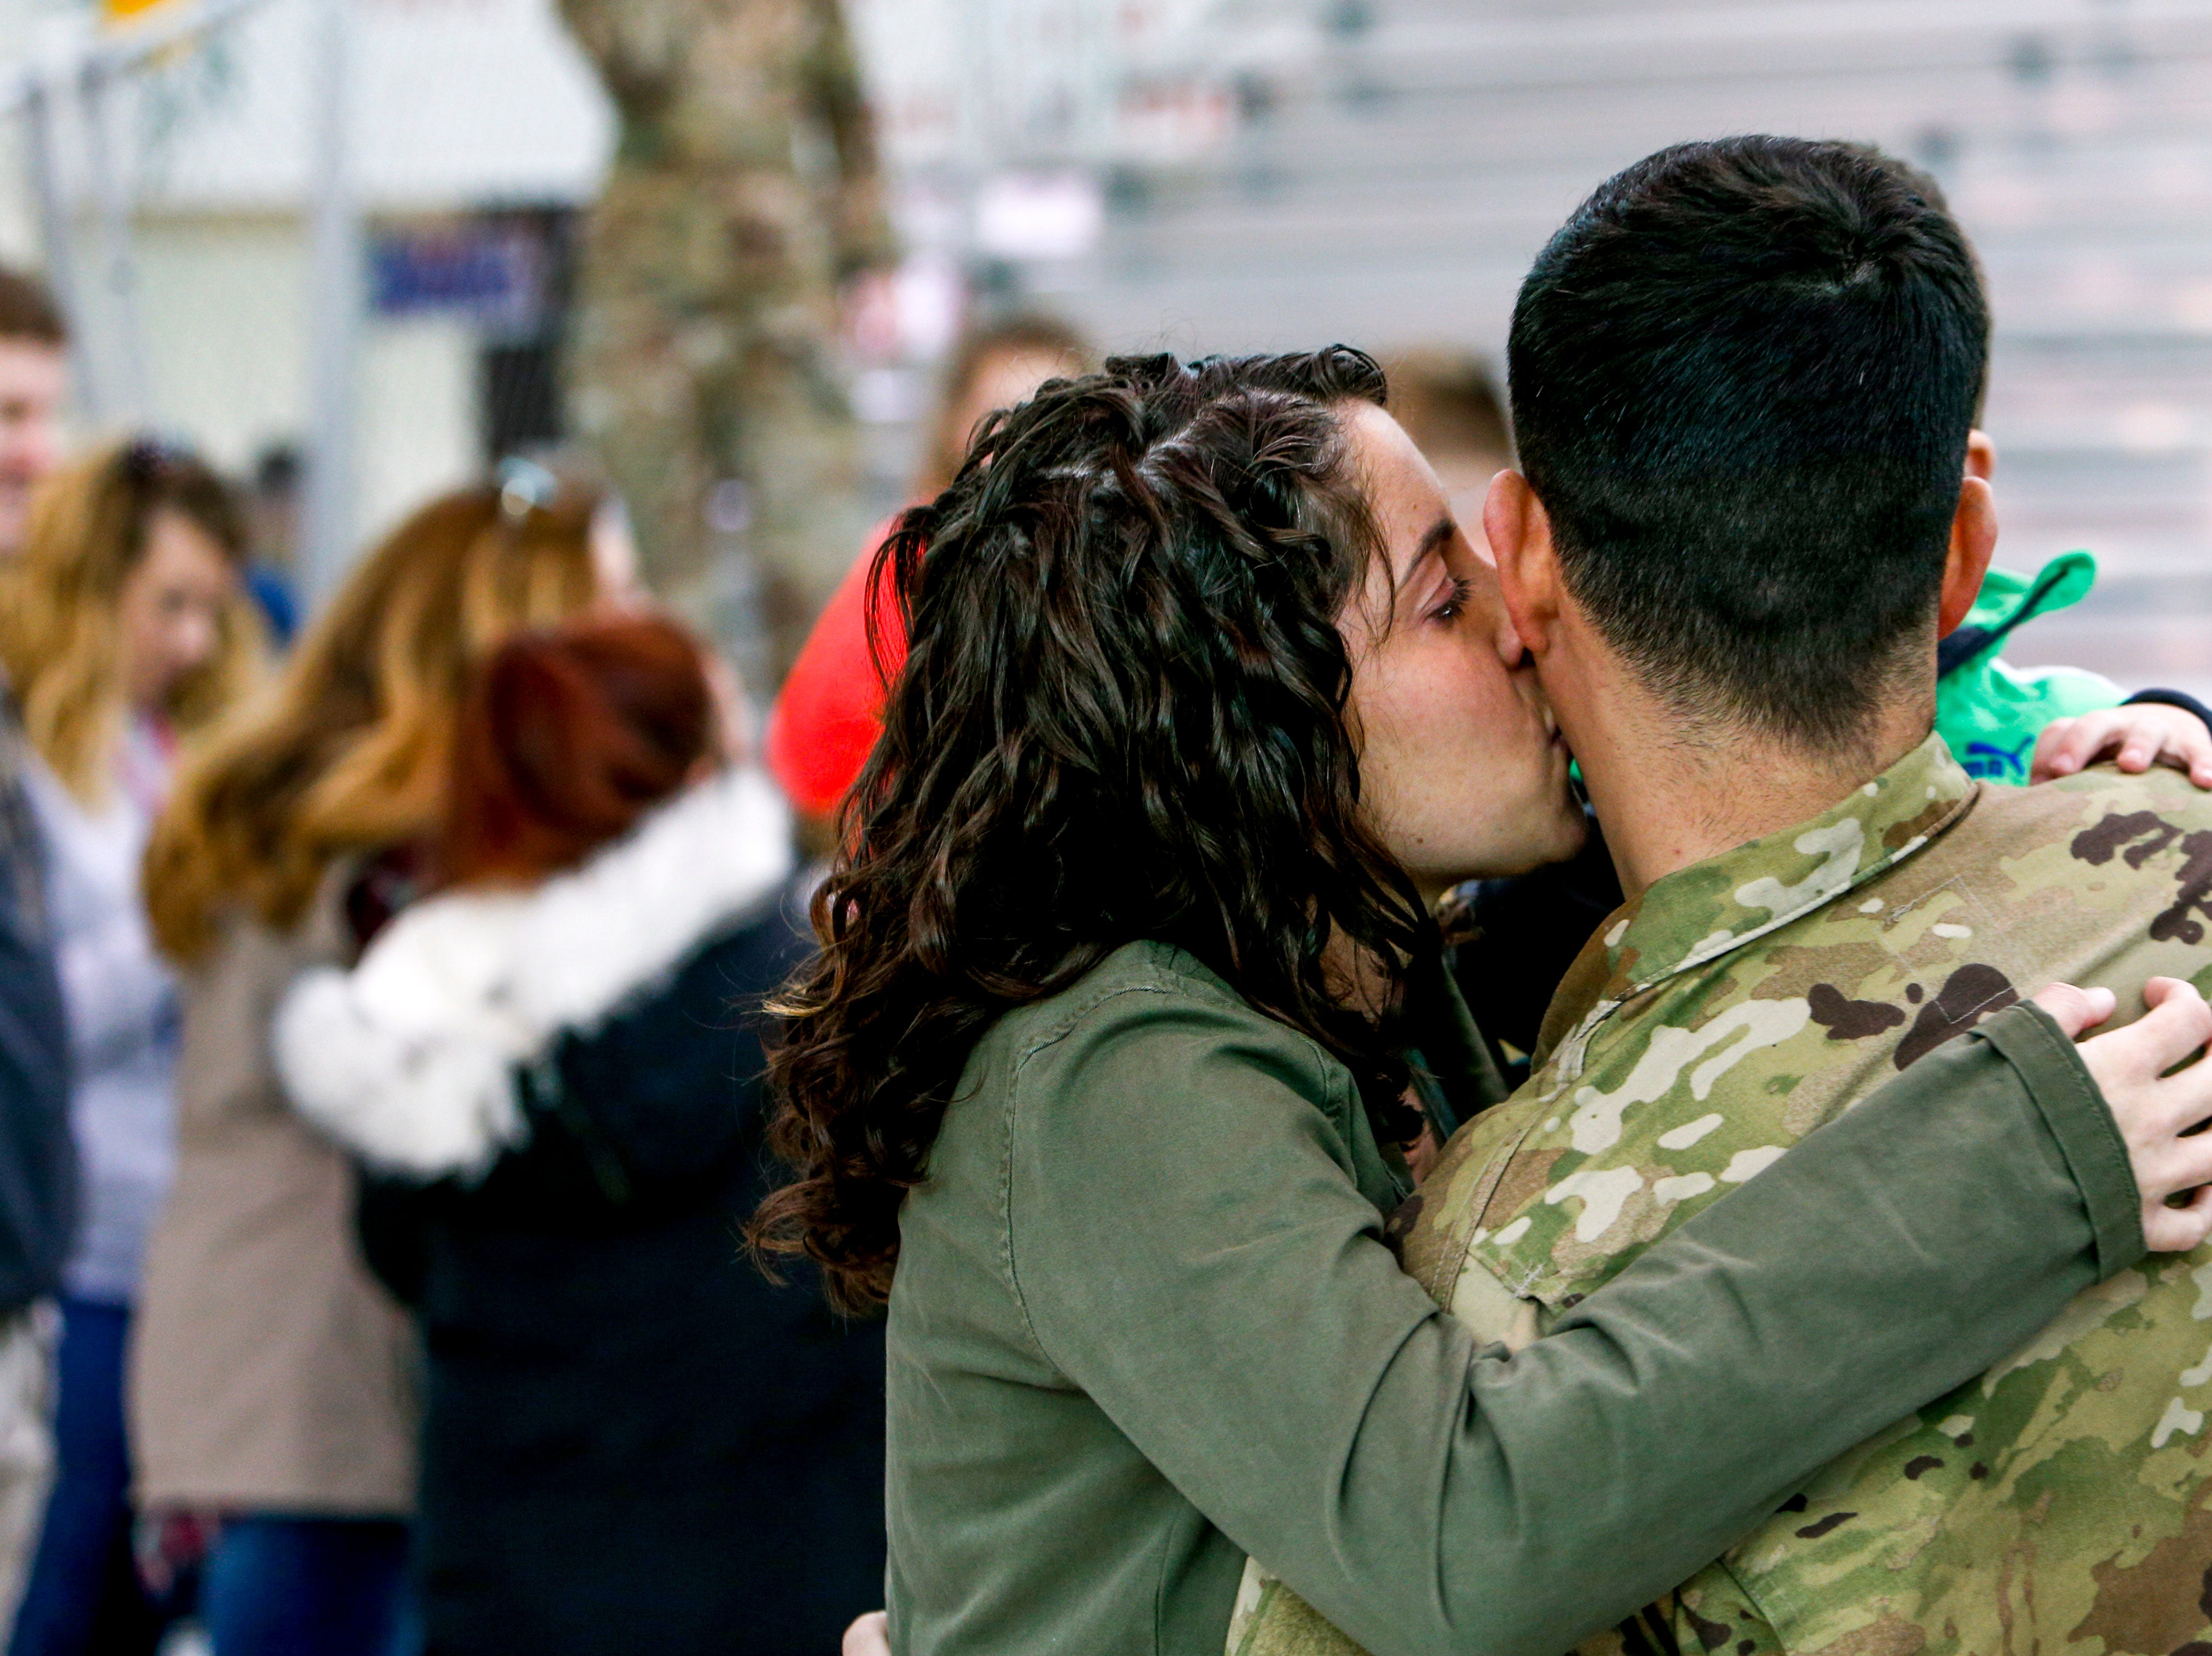 Heather Castanho embraces and kisses her husband Paulo Castanho, who was deployed in Afghanistan before seeing his family during the return of soldiers from the 101st Combat Aviation Brigade of 101st Airborne Division (Air Assault) at Campbell Army Air Field in Fort Campbell, KY., on Sunday, March 10, 2019.